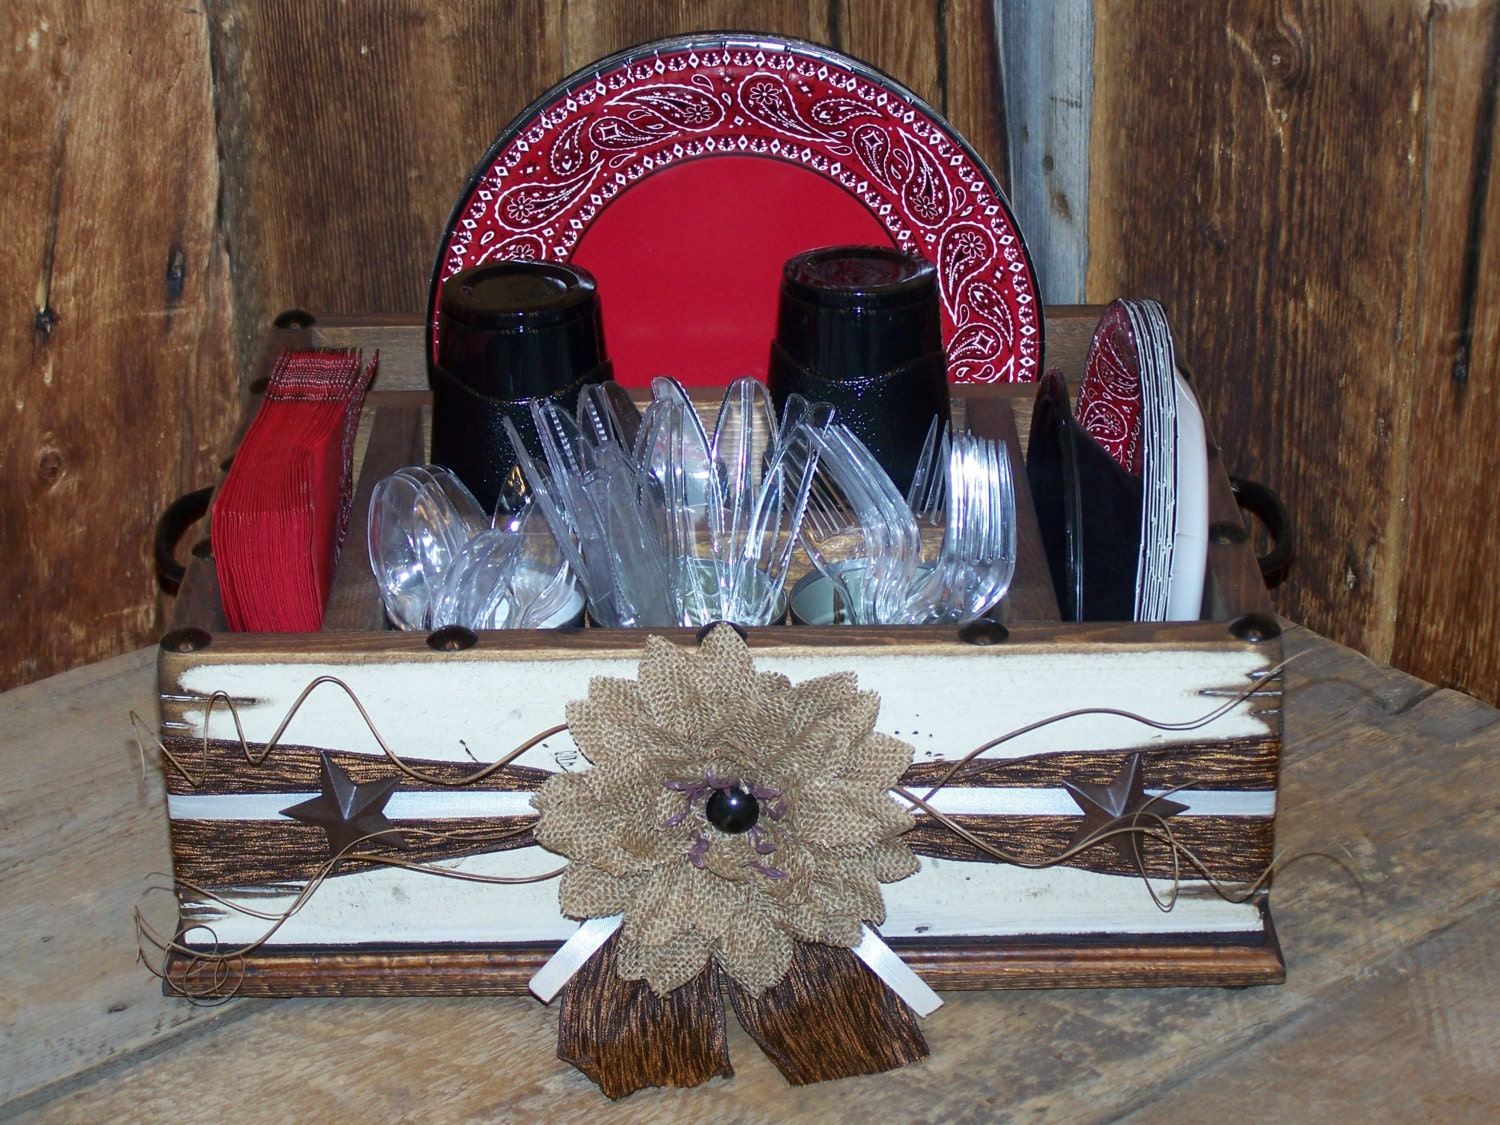 🔎zoom & Rustic western decor themed party tableware utensil holder